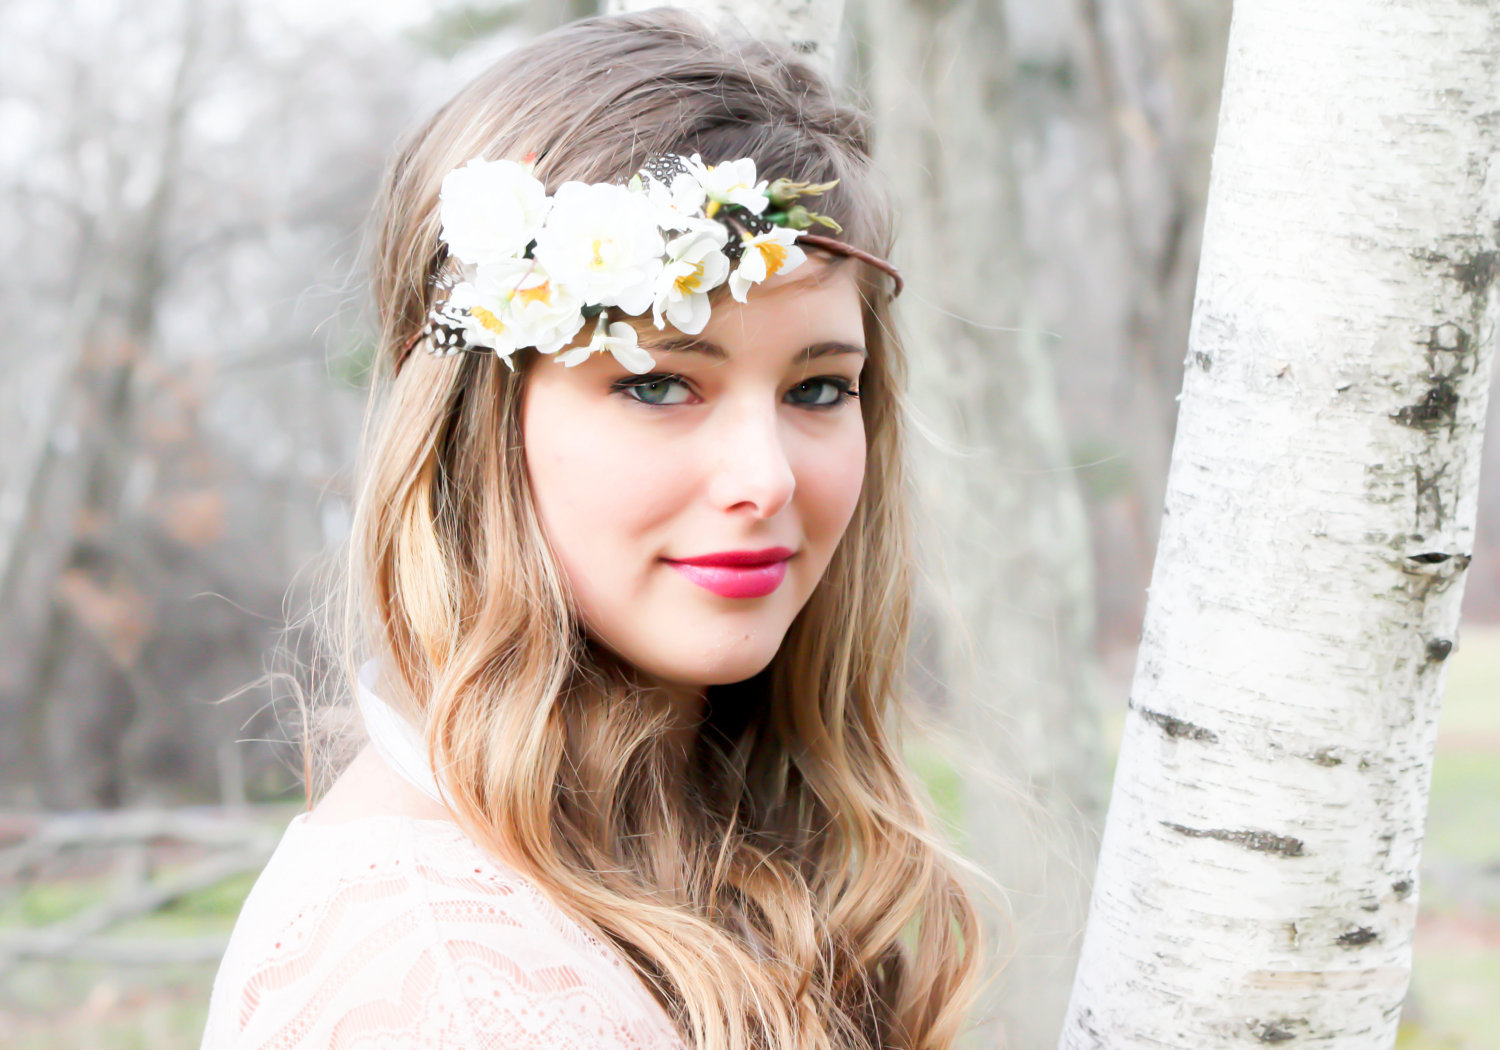 White flower head band image collections flower decoration ideas white flower hair band images flower decoration ideas white flower hair band images flower decoration ideas mightylinksfo